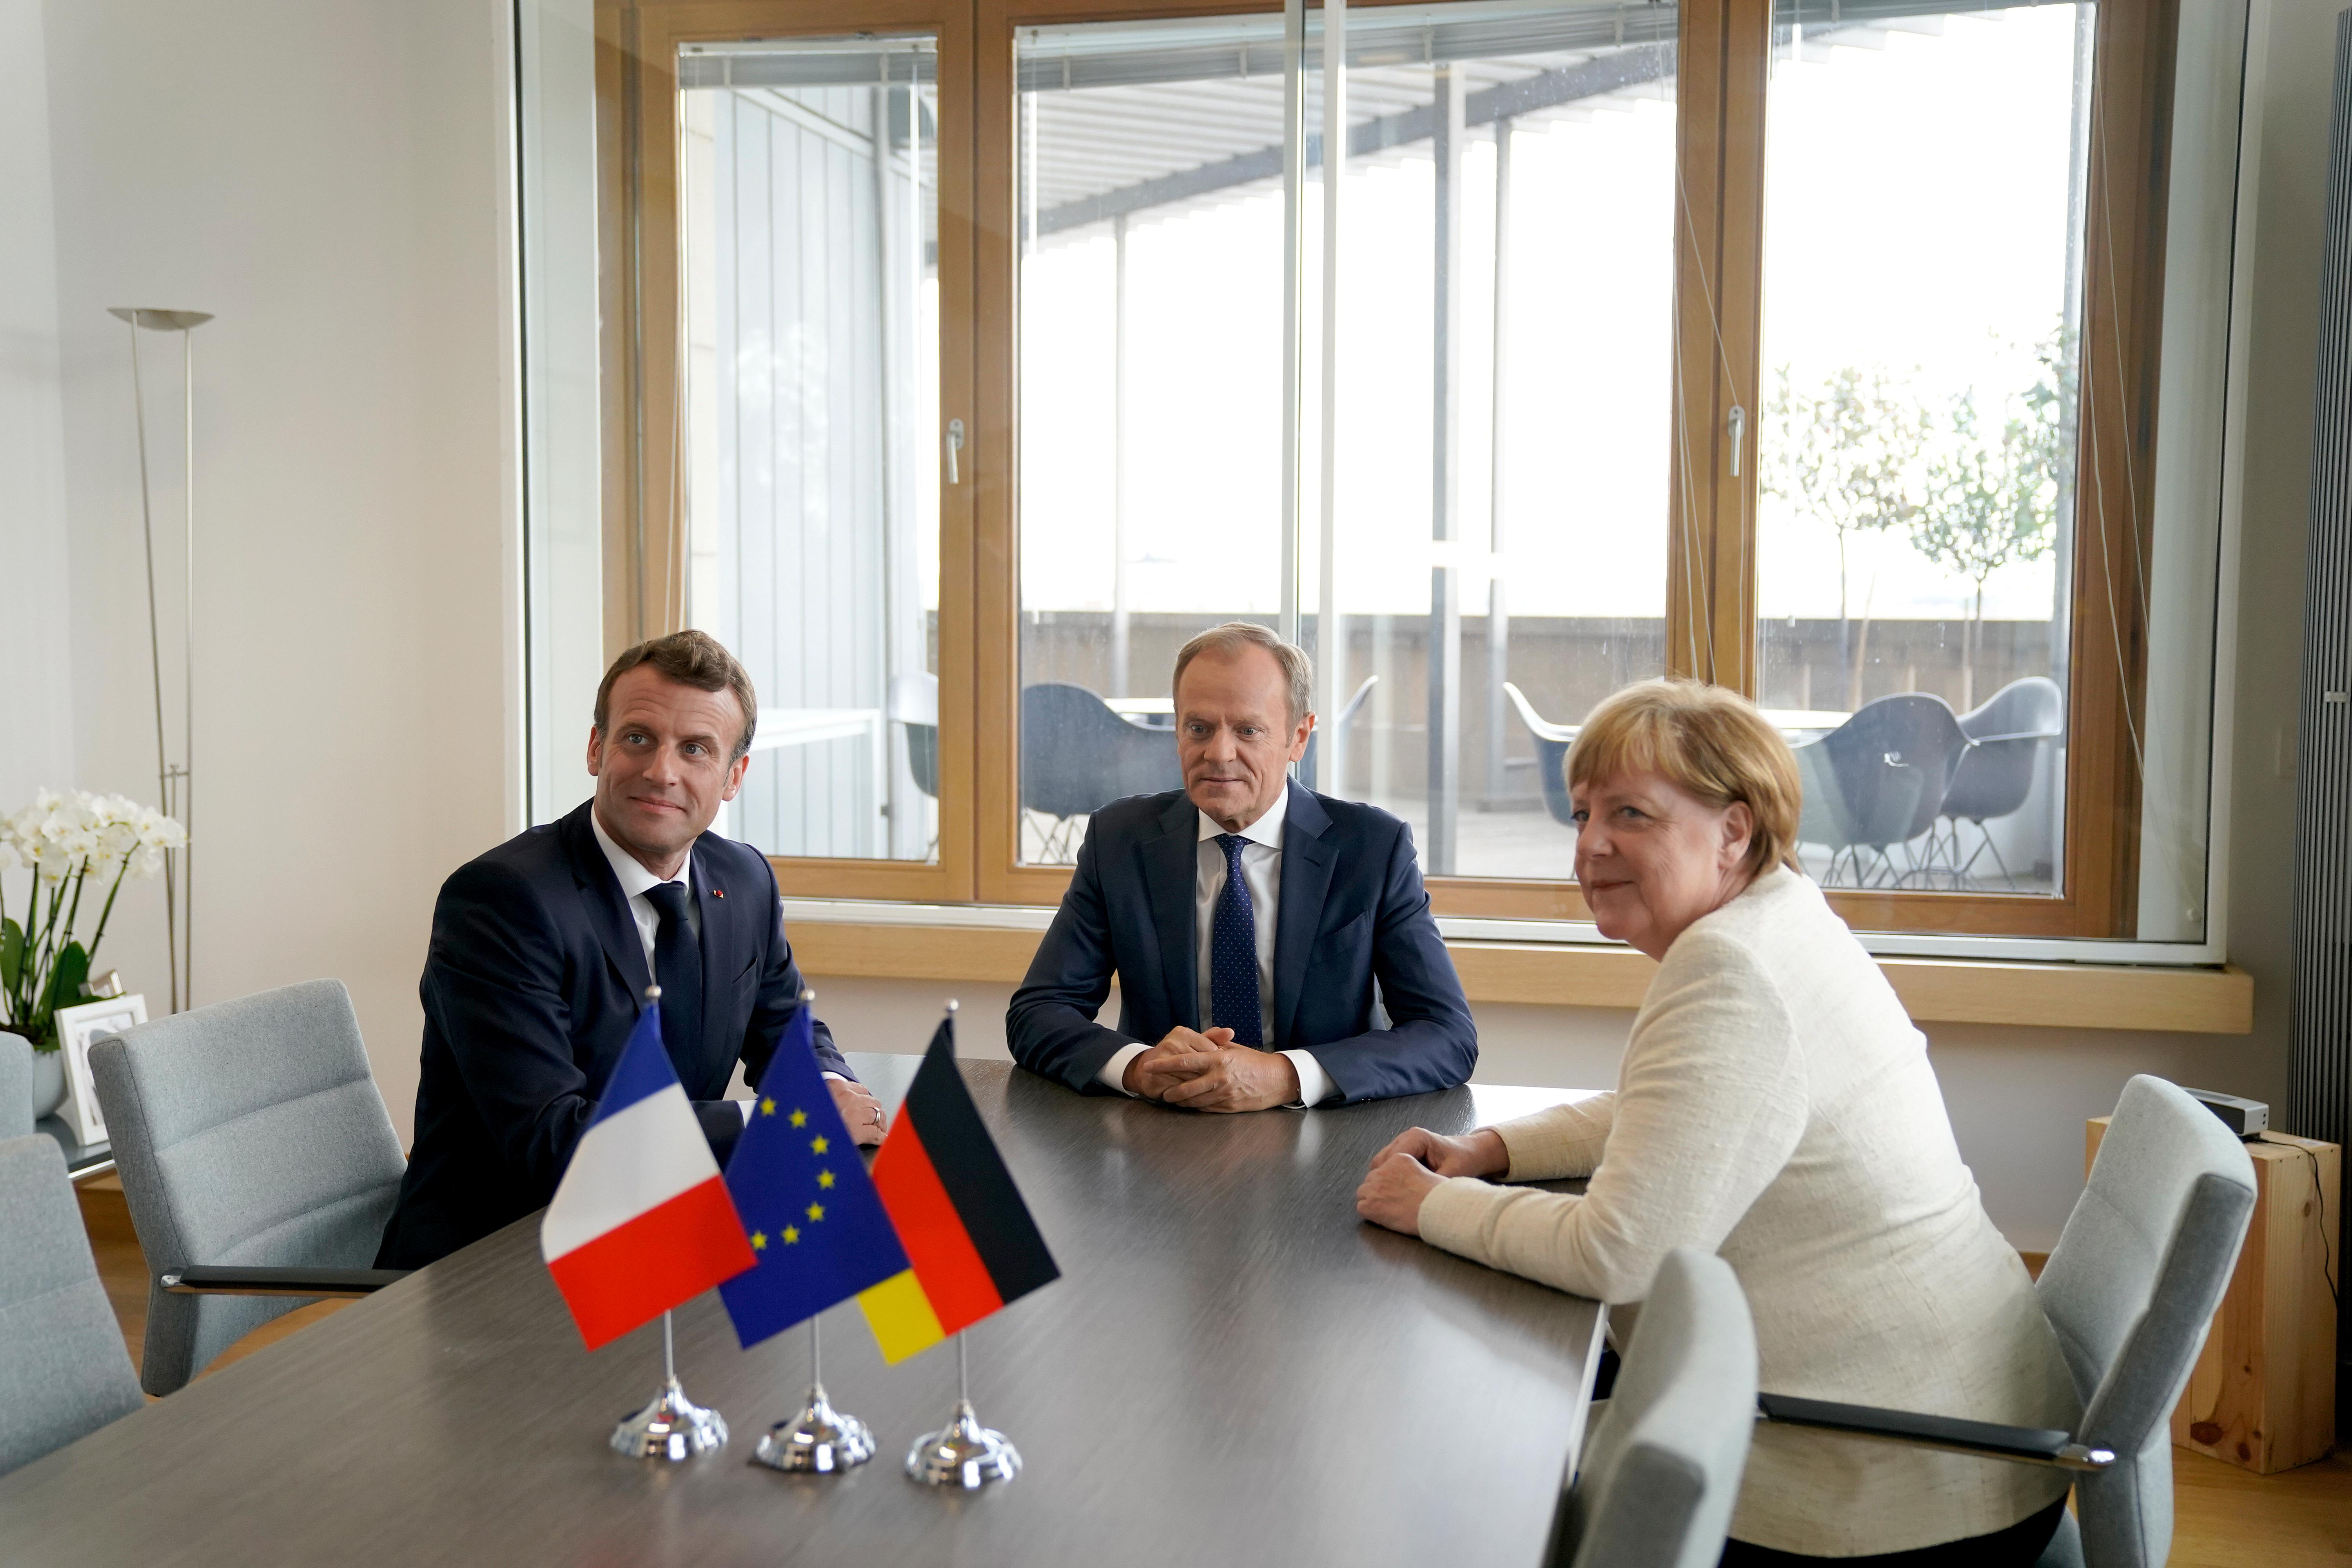 EU aims to complete top jobs jigsaw puzzle on June 30